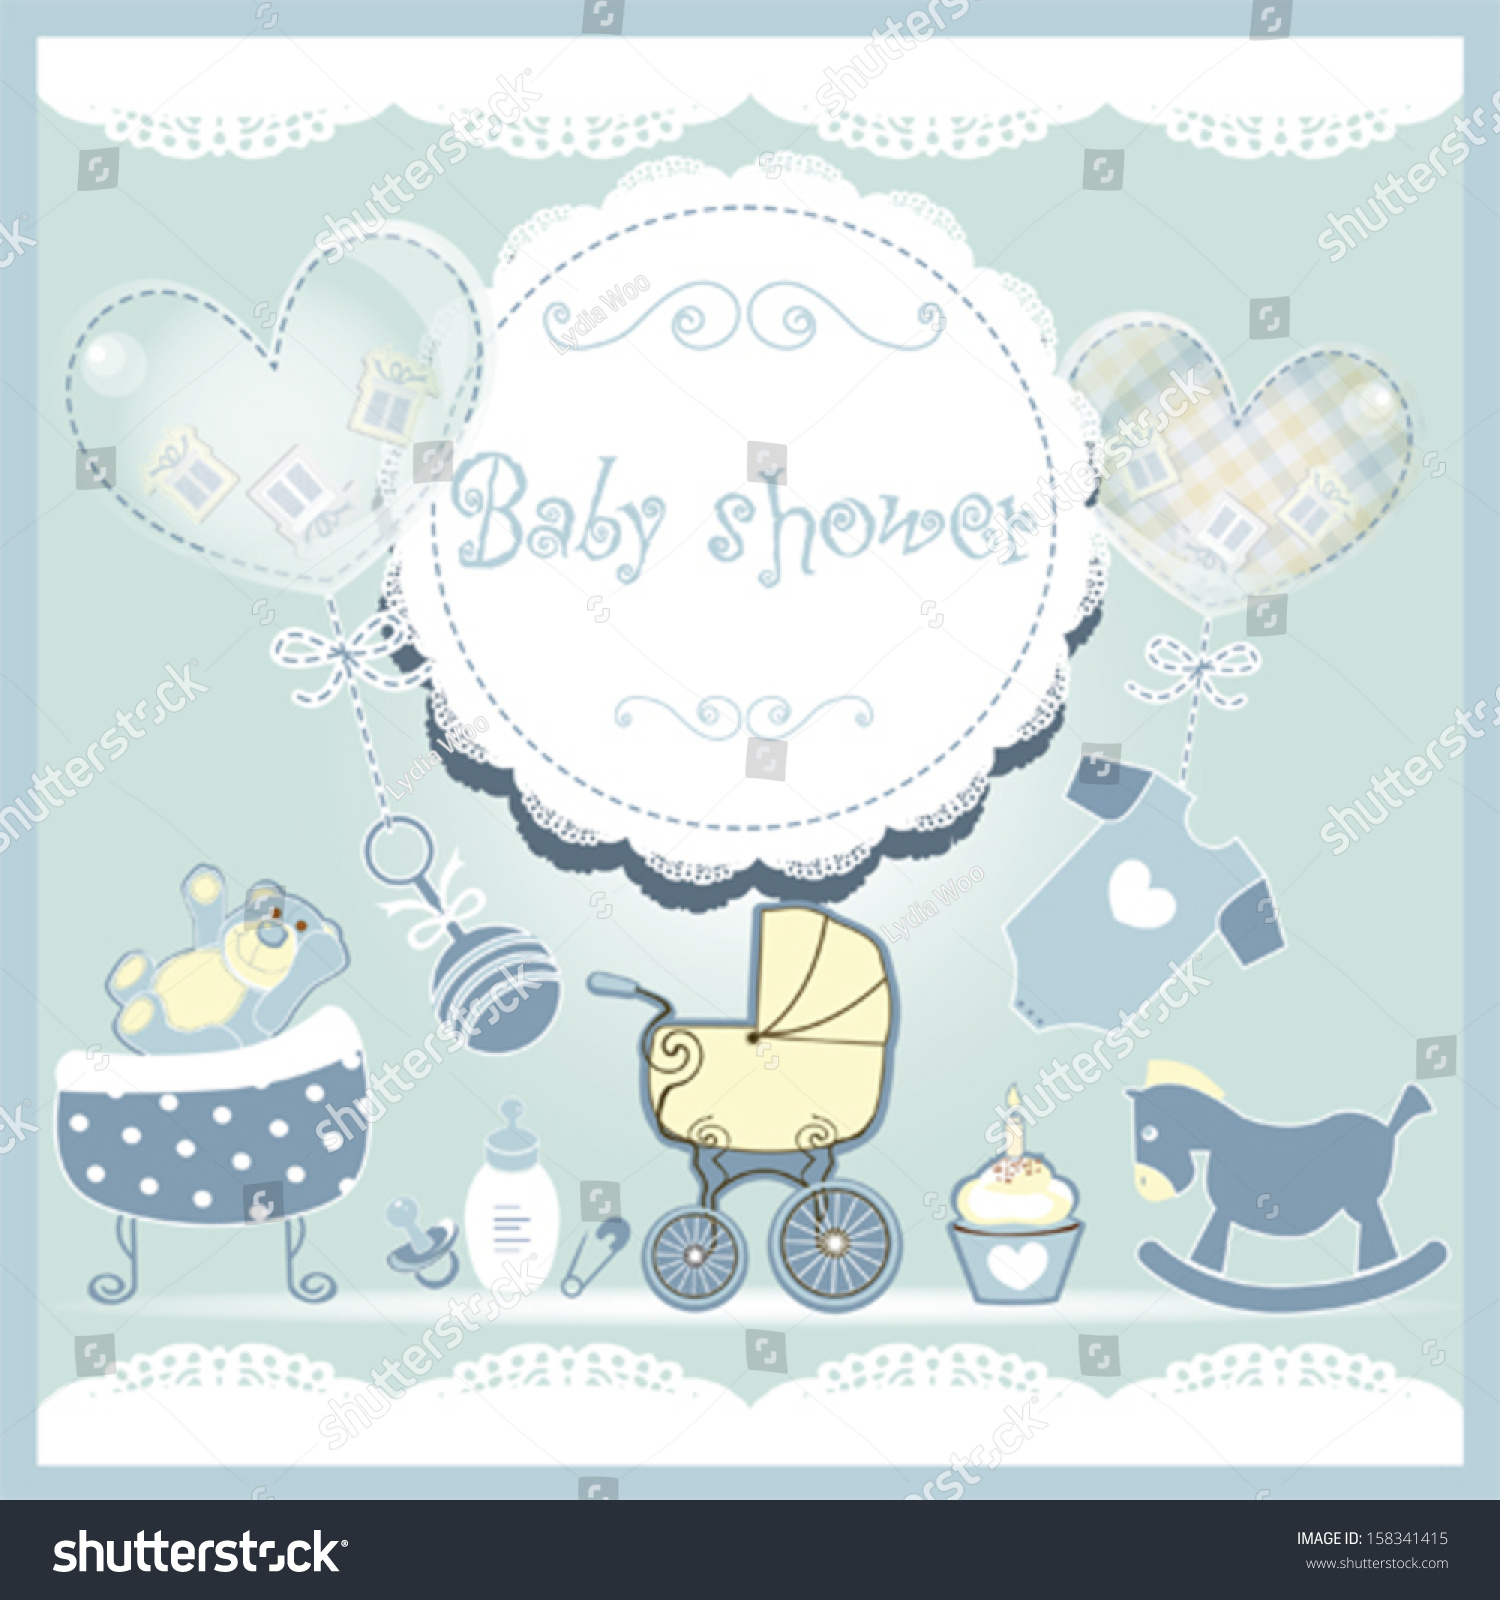 Baby boy arrival card vector by leonart image 600444 vectorstock - Baby Shower Card With Cute Baby Accessories Stock Vector Wallpaper Gallery Baby Shower Card Vector